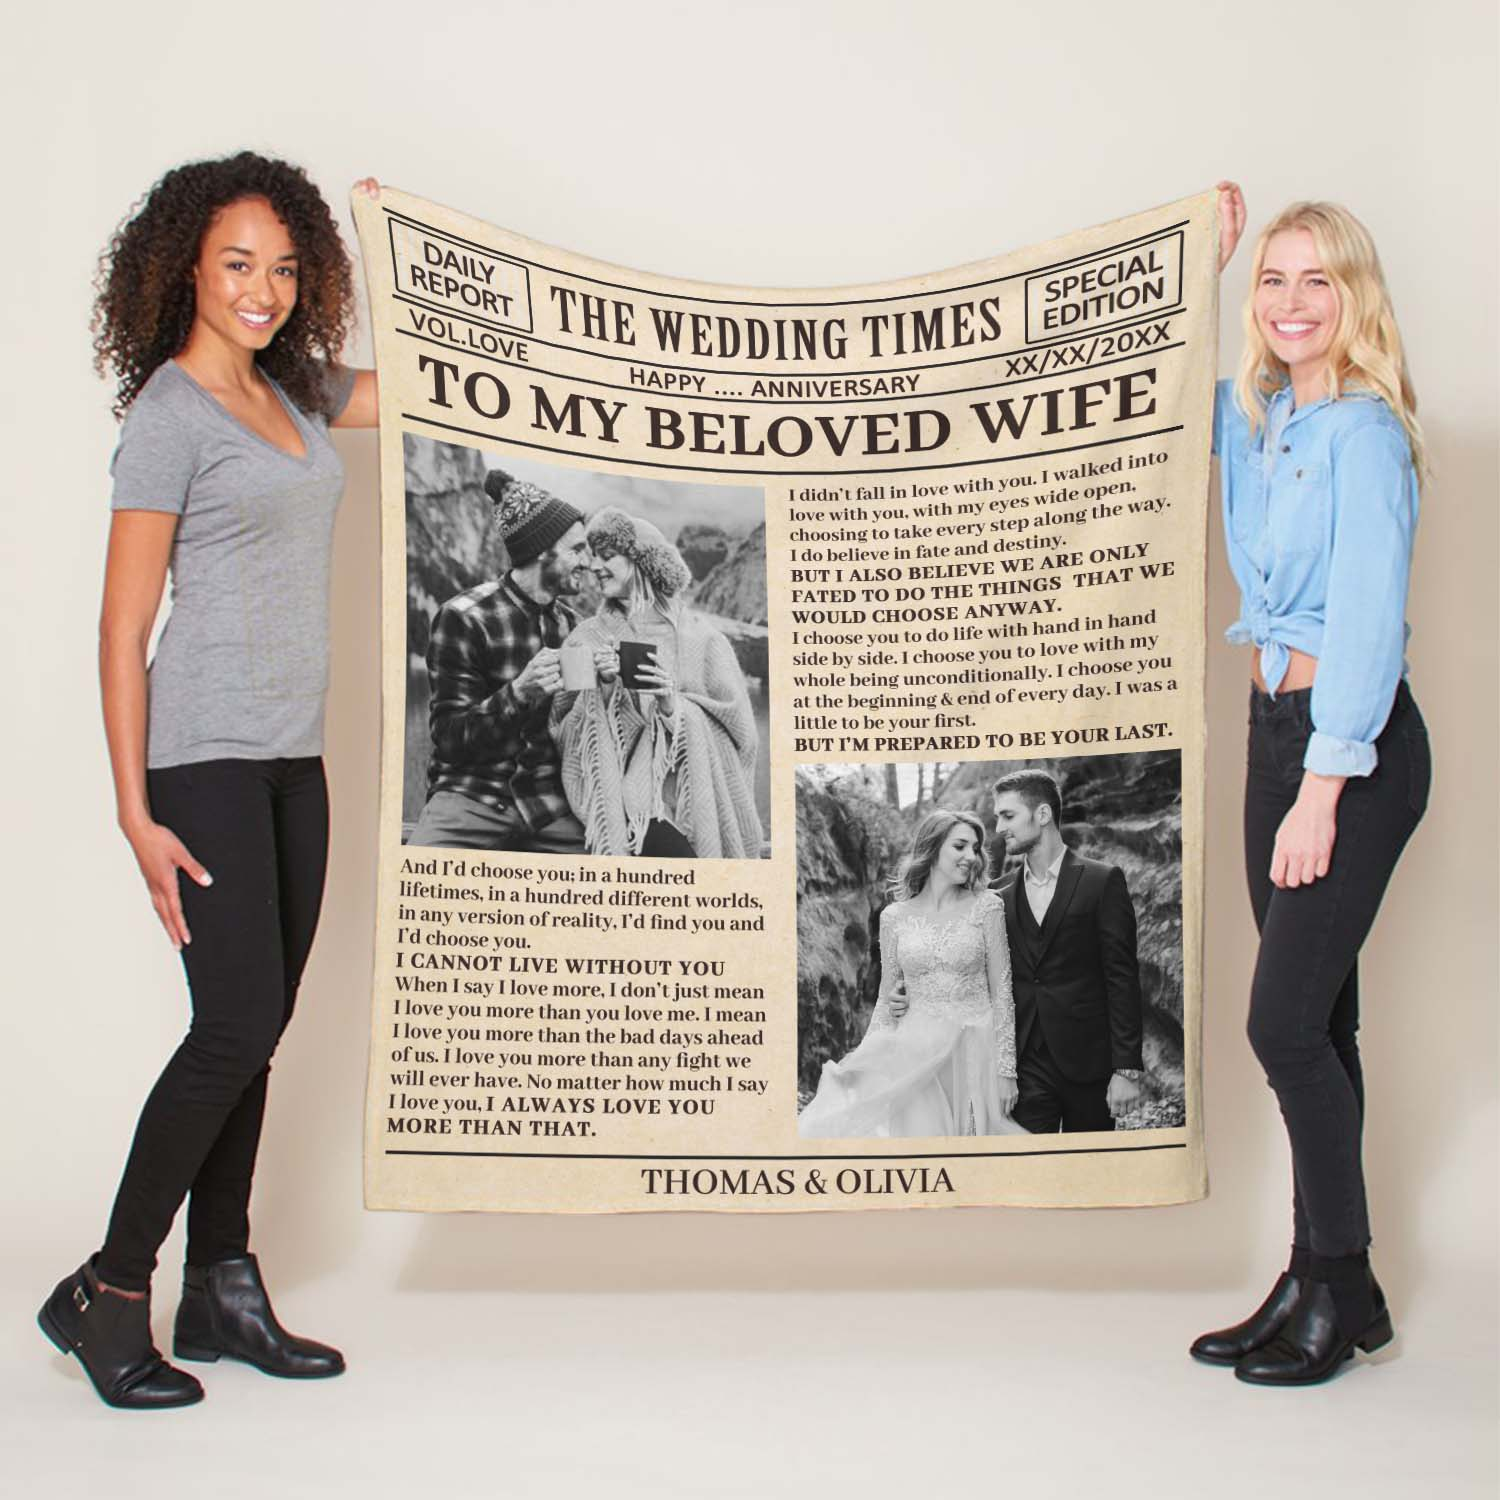 You want something to remind her that you love her every day. Get her a notebook handwritten love letter or message custom sherpa blanket. It will show her that you put your heart into this gift for the anniversary. Every time she pulls the blanket up, it will warm her gently with your love letter.